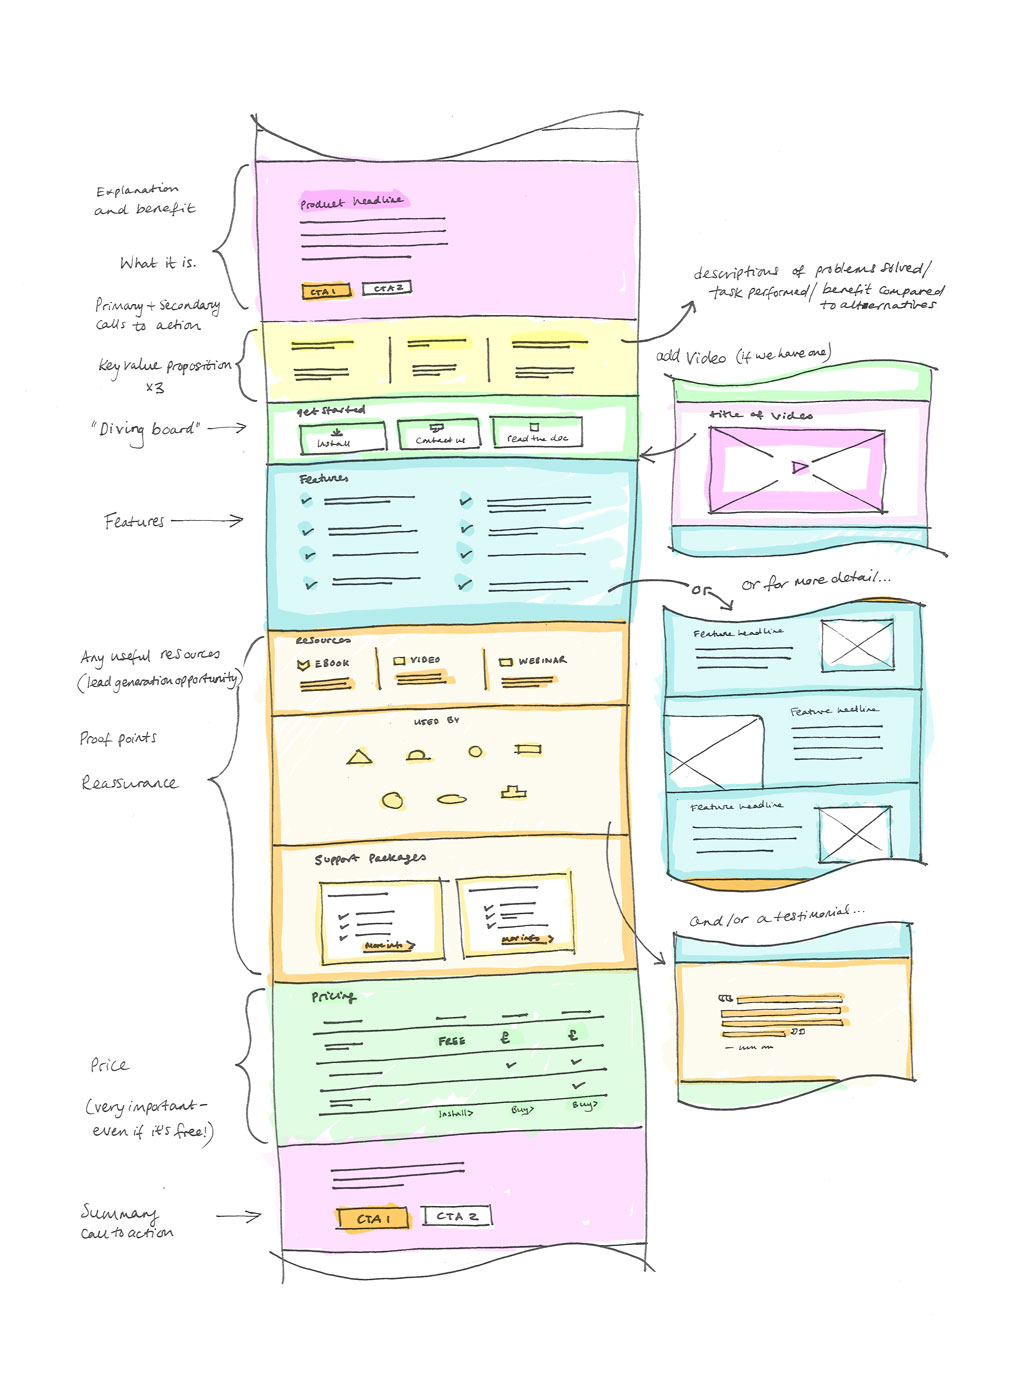 Diagram Of A Product Page Template For Ubuntu.com